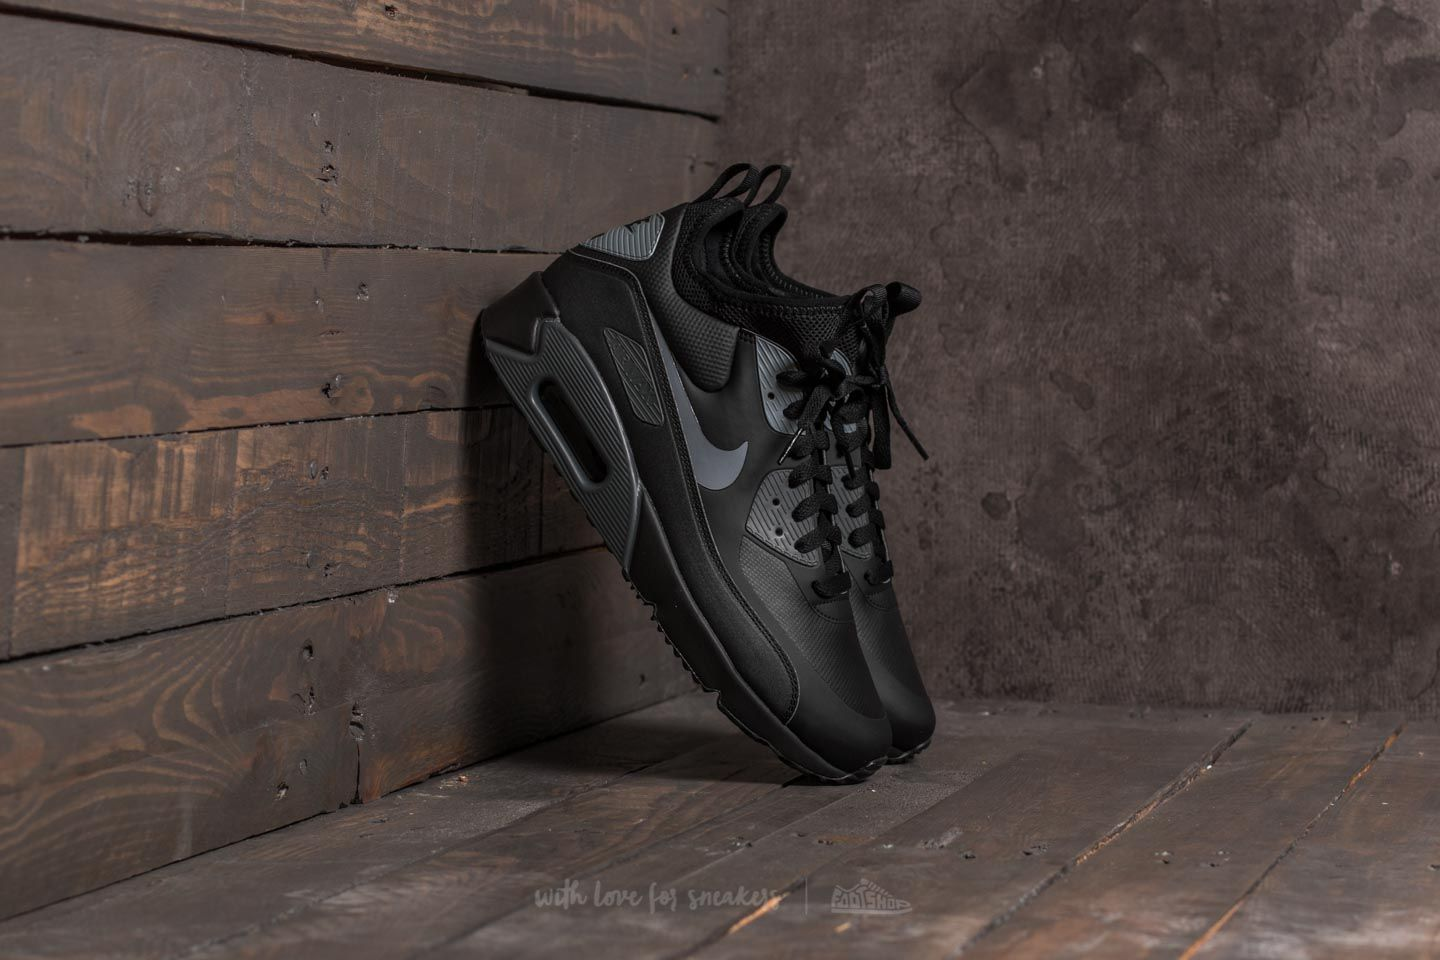 ed9e467bea Nike Air Max 90 Ultra Mid Winter Black/ Cool Grey-Anthracite | Footshop